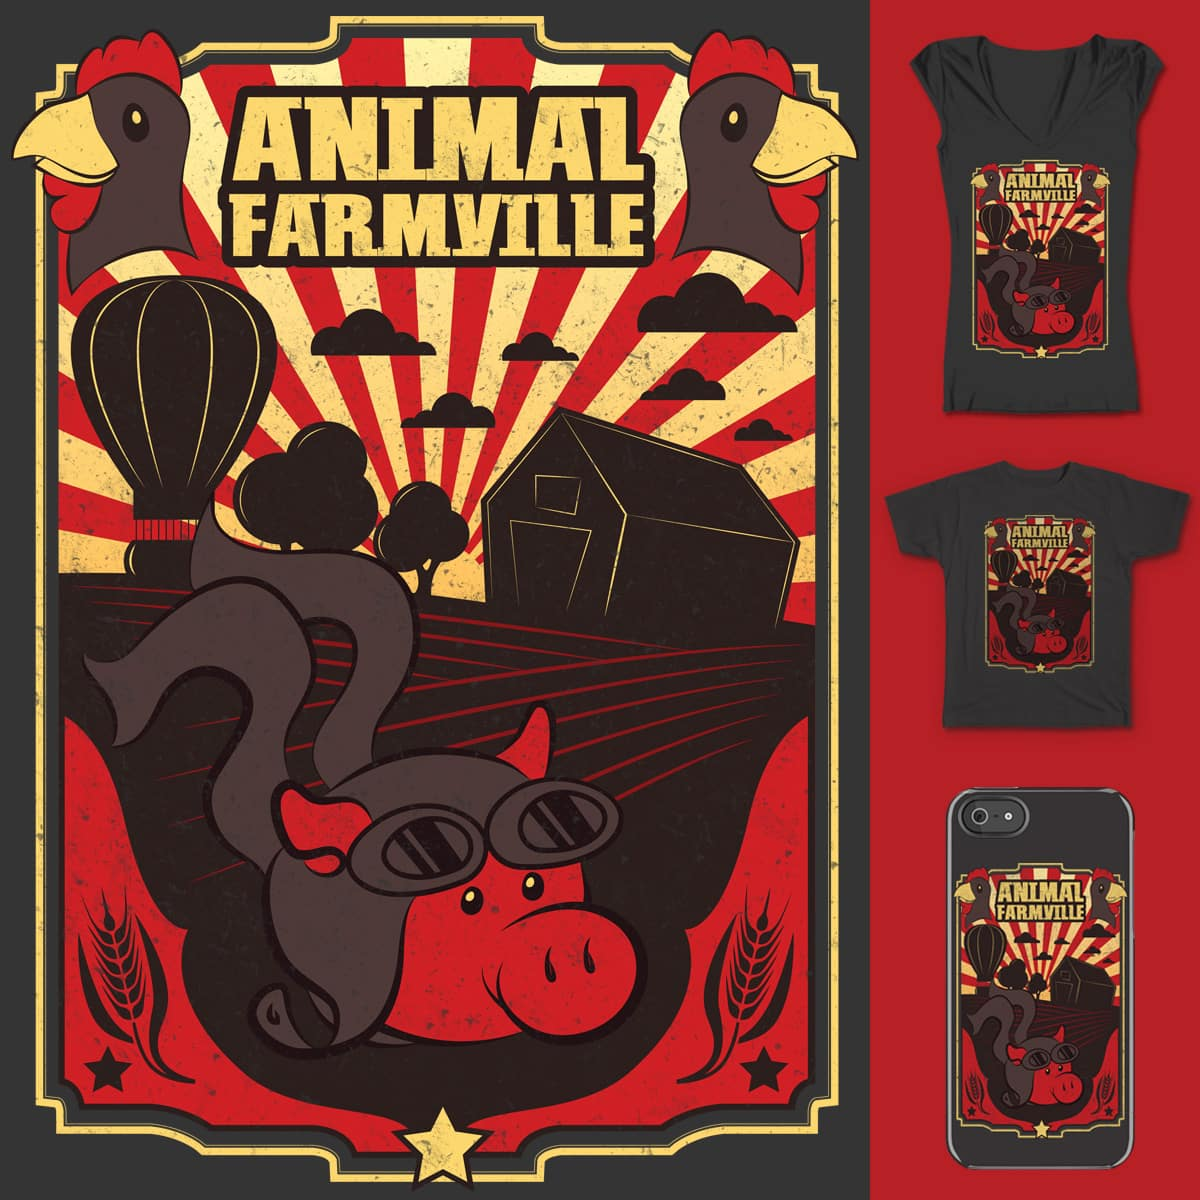 Animal Farmville by BeanePod and nintechno on Threadless